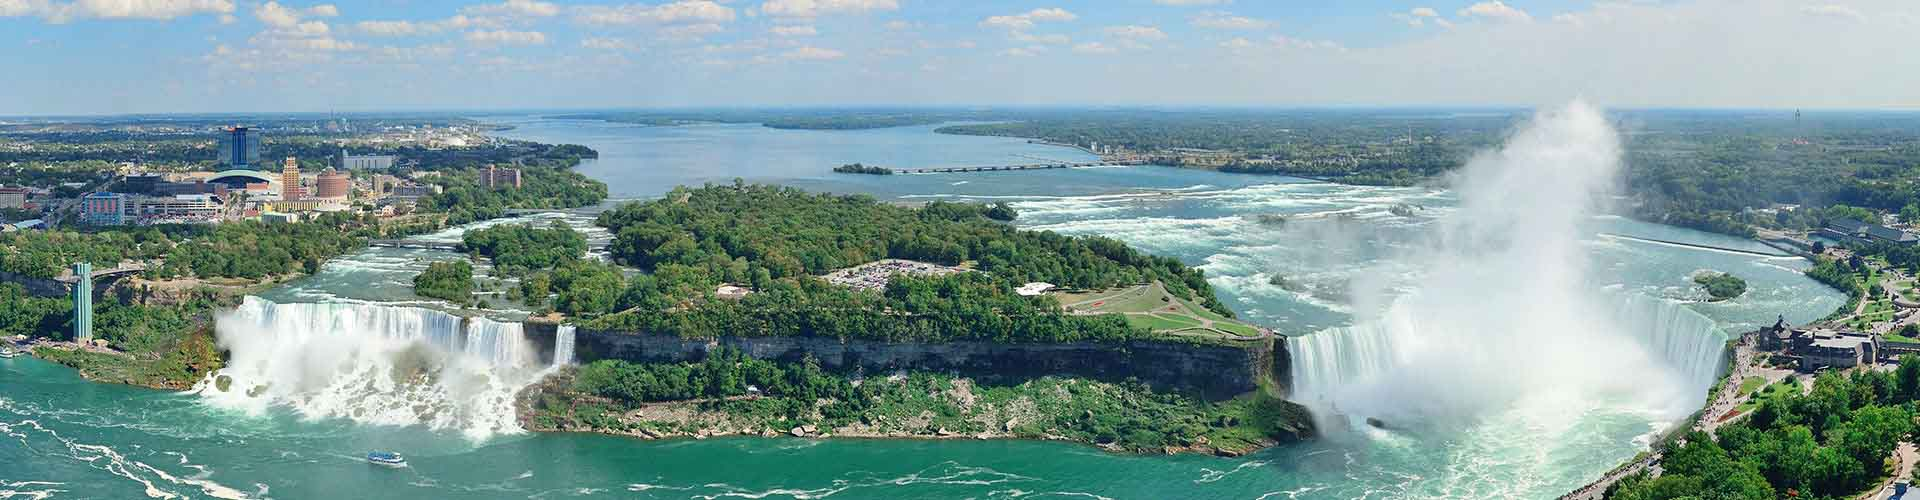 Niagara Falls – Hostels in Niagara Falls. Maps for Niagara Falls, Photos and Reviews for each hostel in Niagara Falls.